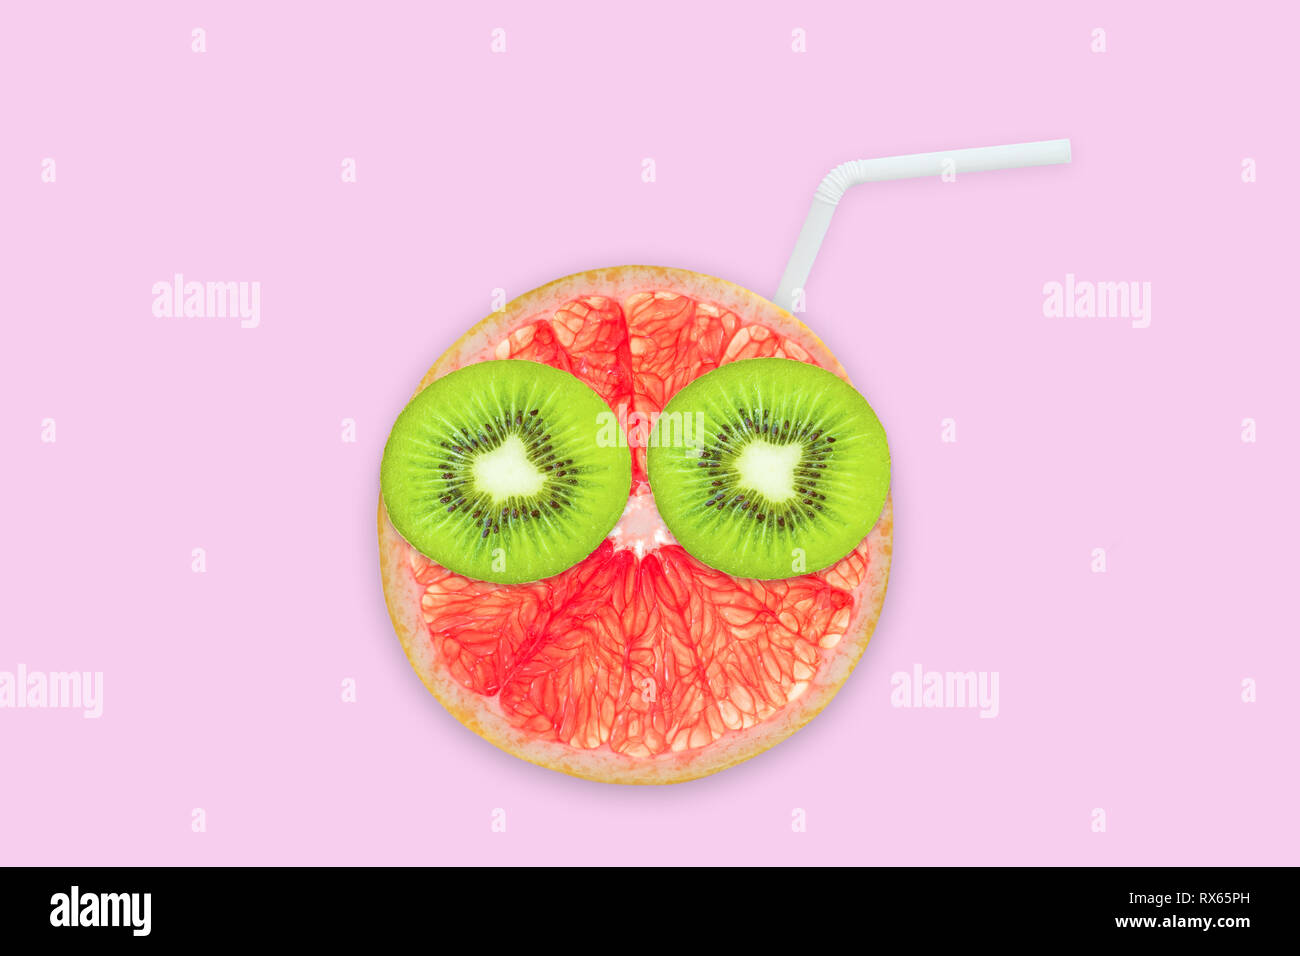 Fruit creative face with slices of grapefruit and kiwi, drinking straw on pink background, fruit juice and summer concept - Stock Image